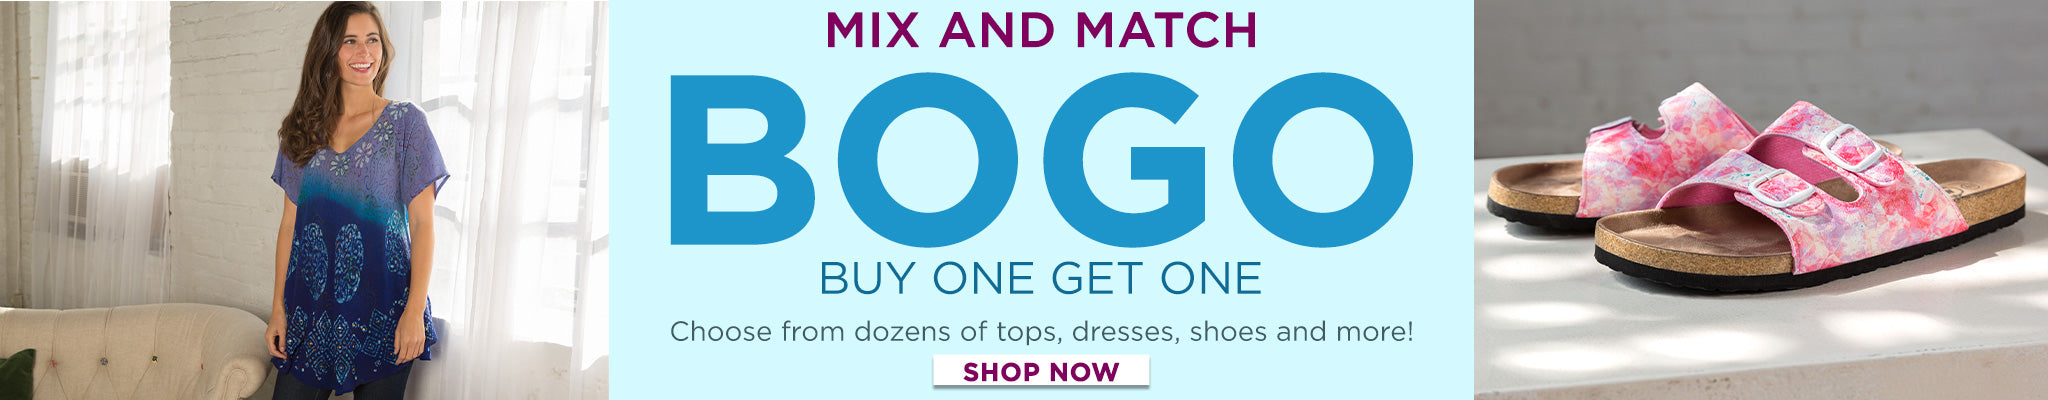 Buy One, Get One | Mix and Match | Choose from dozons of tops, dresses, shoes, and more! | Shop Now!